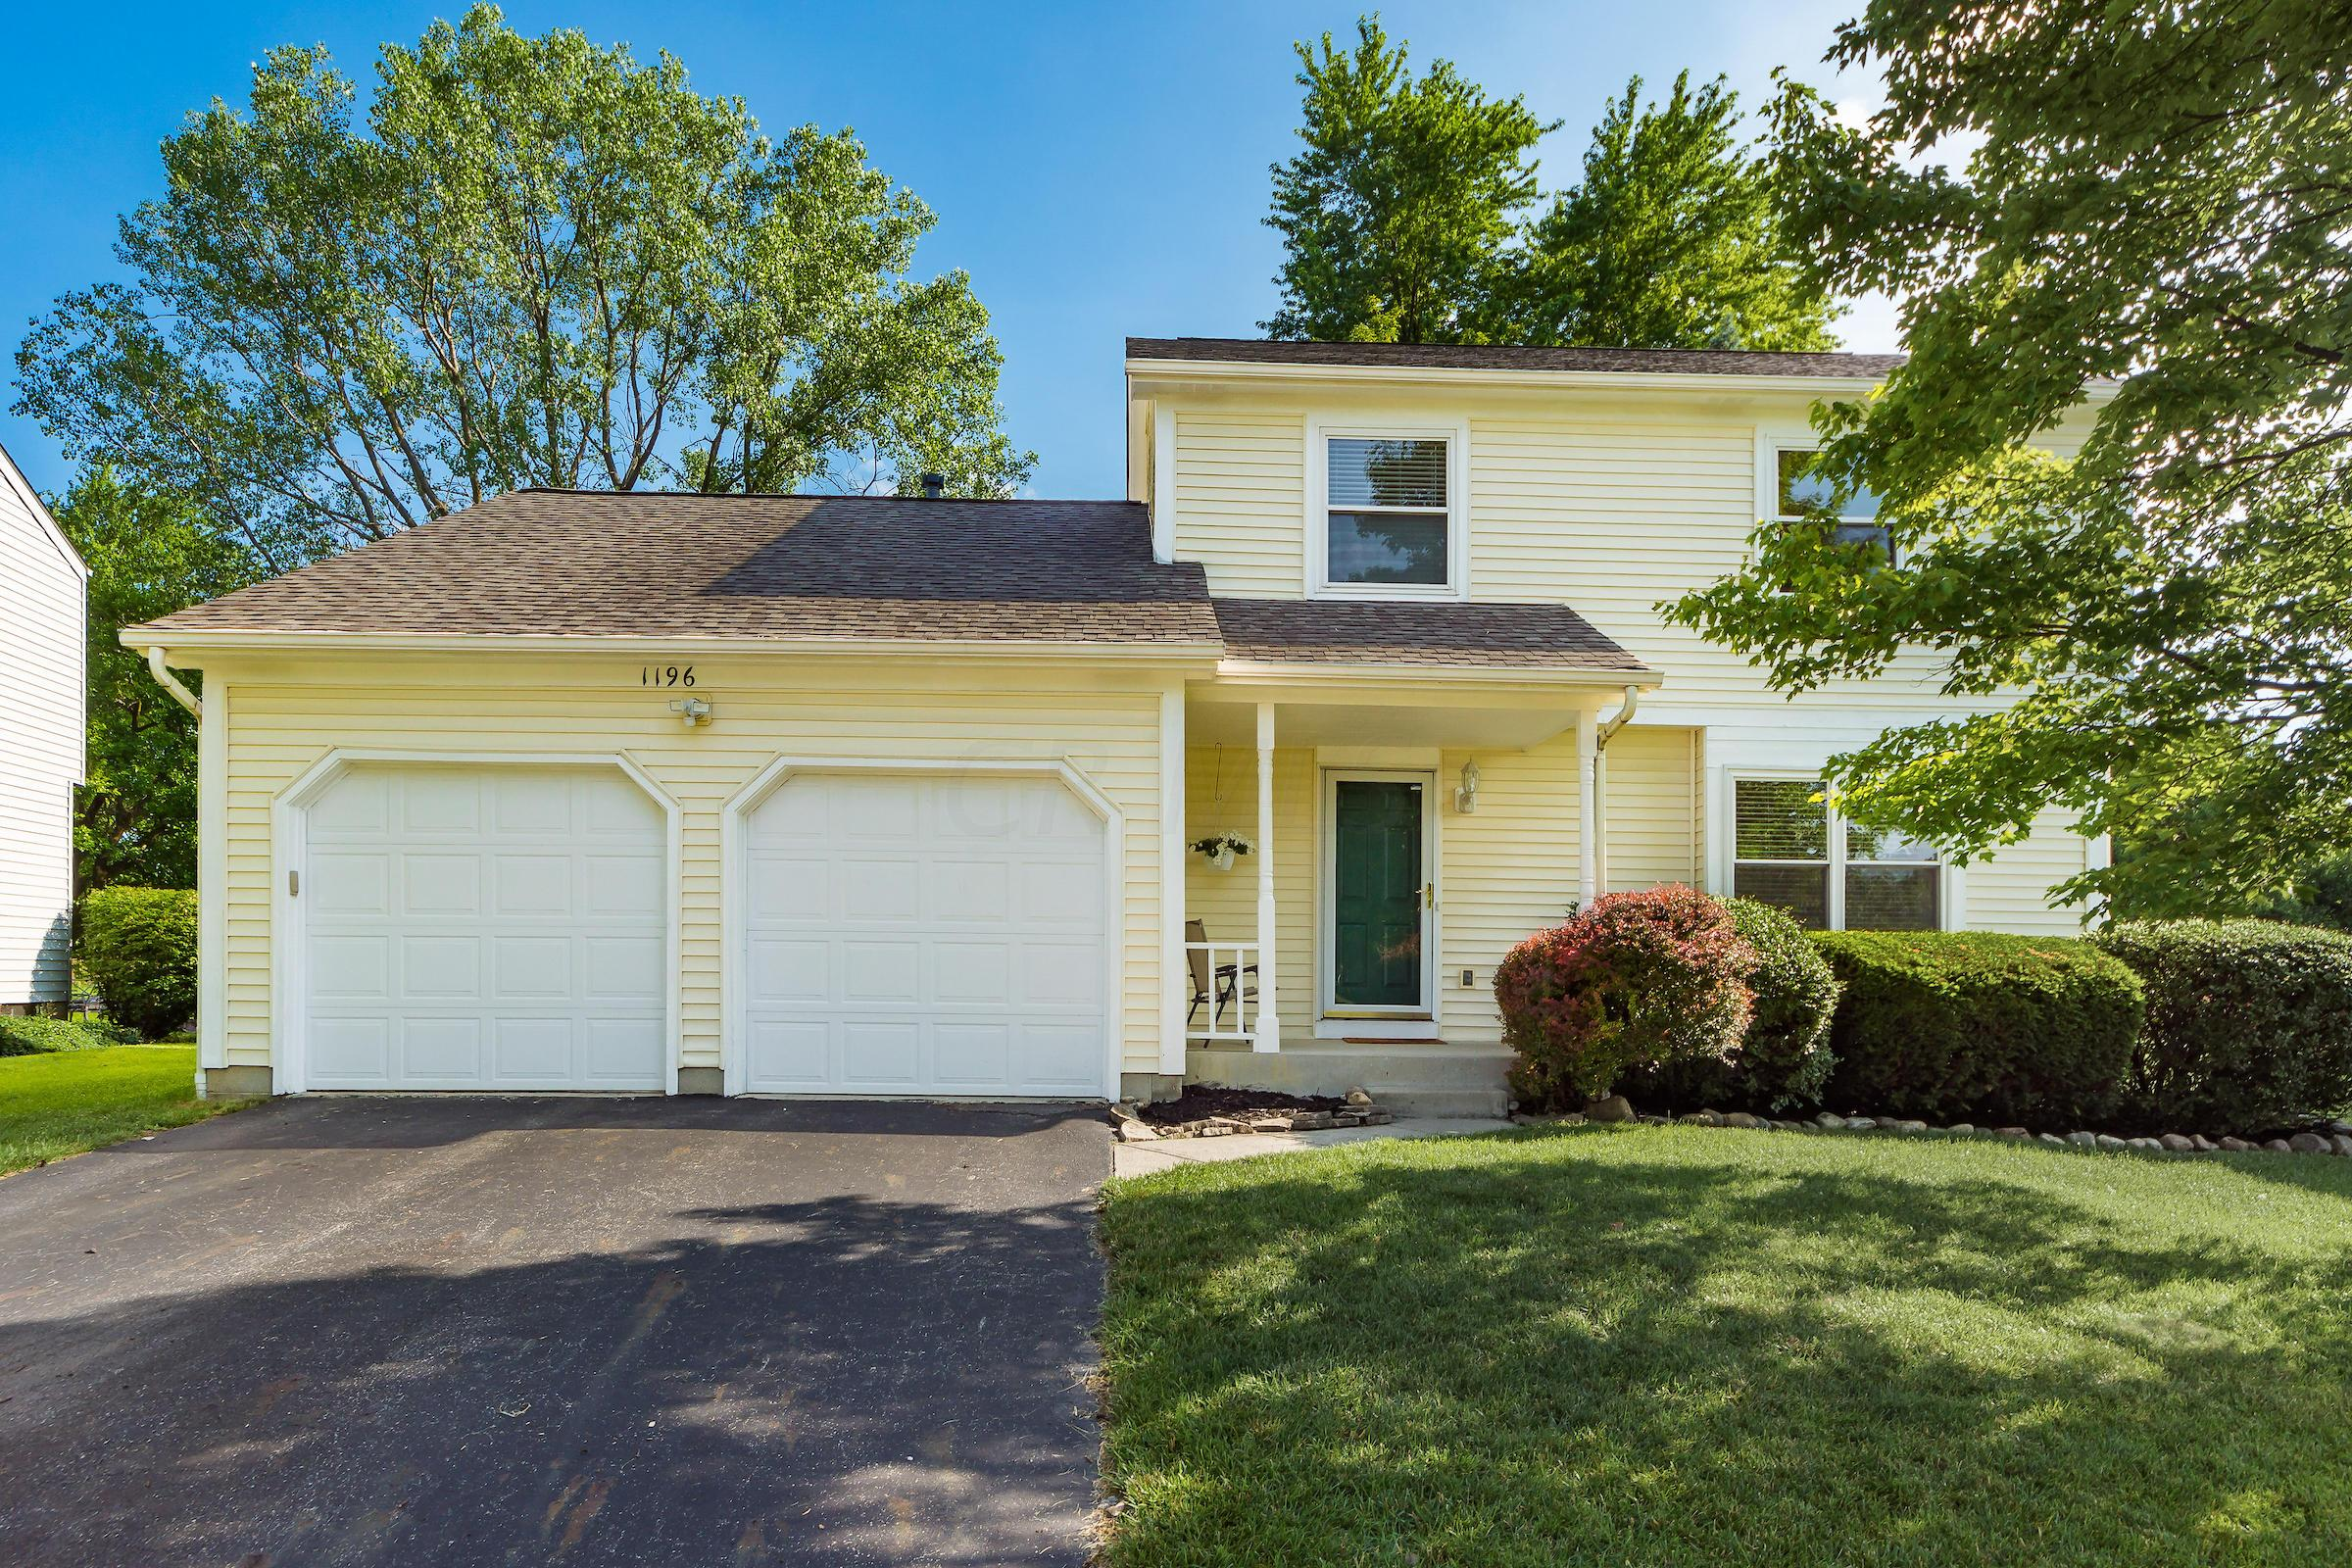 1196 Snohomish Avenue, Worthington, Ohio 43085, 3 Bedrooms Bedrooms, ,3 BathroomsBathrooms,Residential,For Sale,Snohomish,220021009